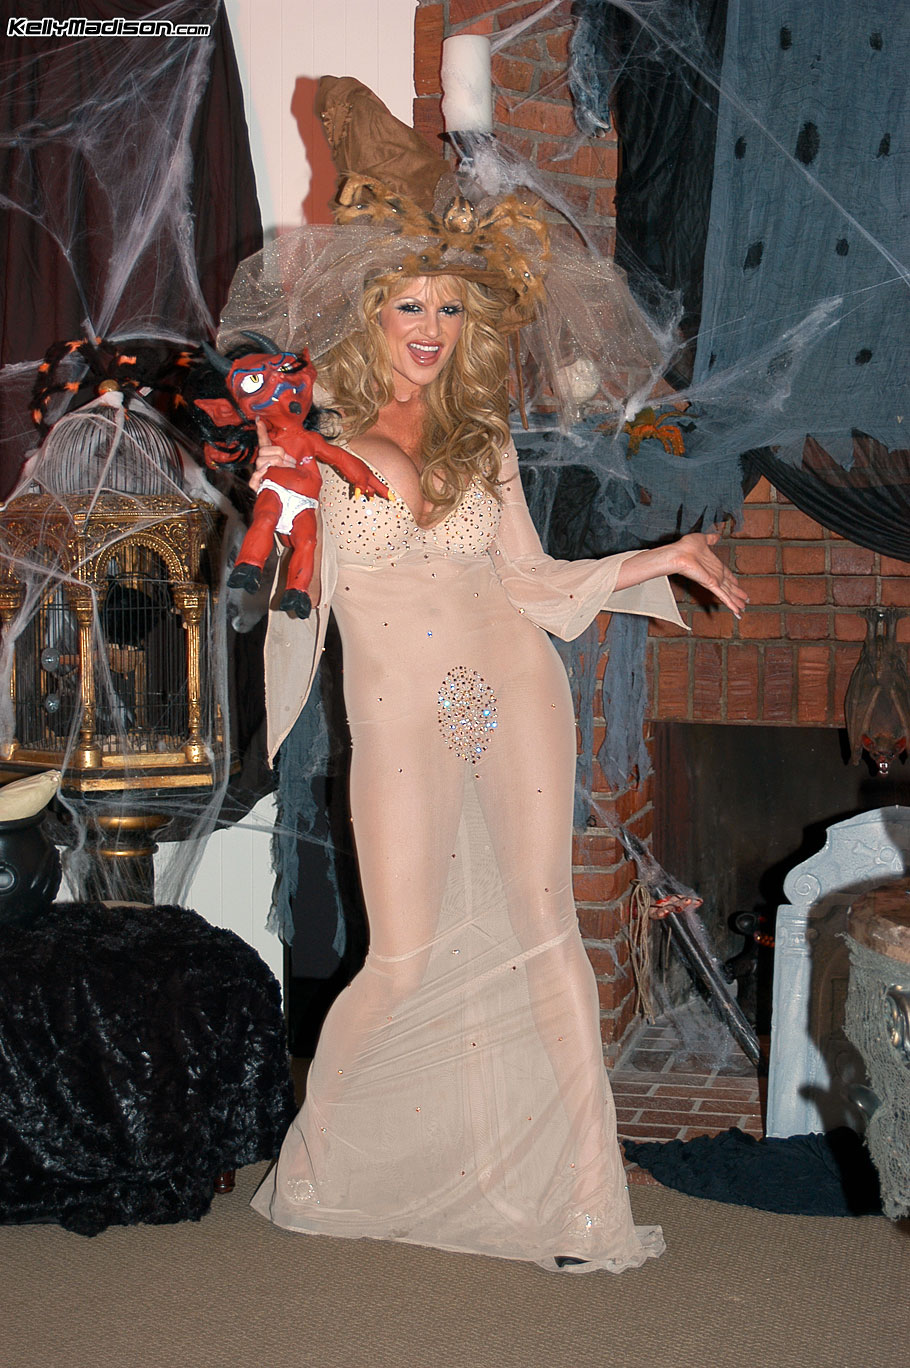 Kelly Madison Huge Tit White Witch in Costume